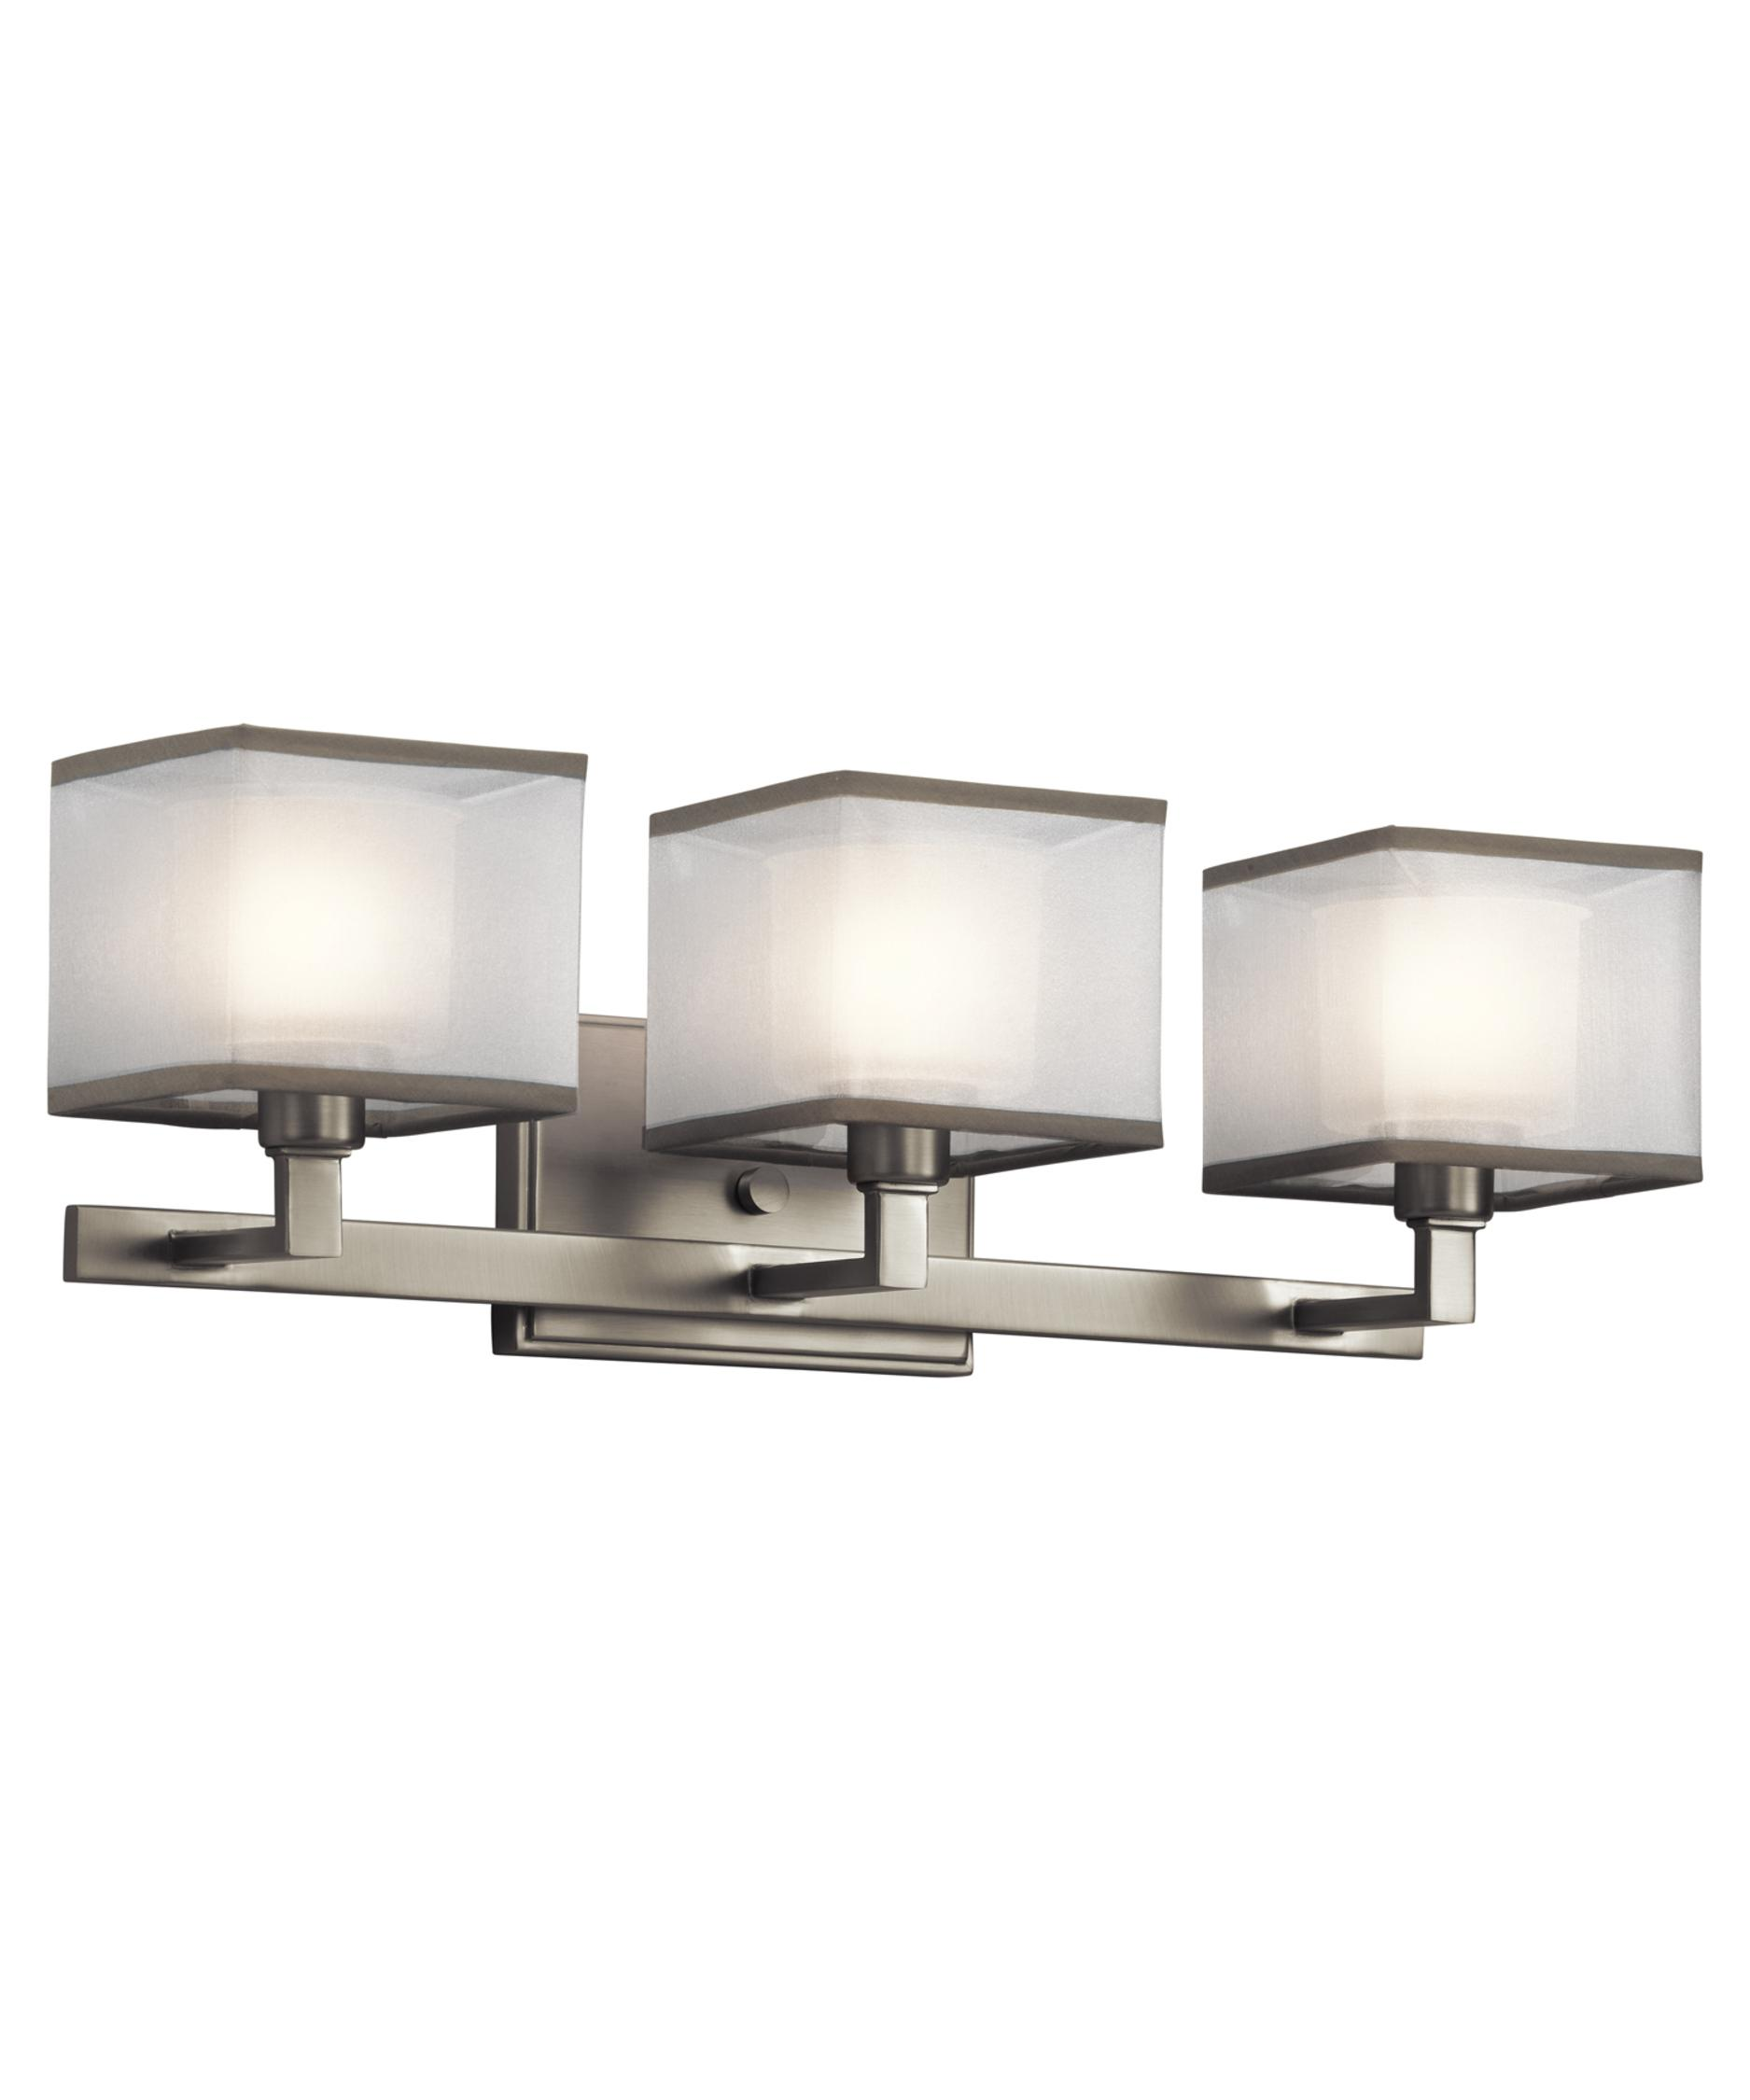 Delta Bathroom Lighting Fixtures Bclight